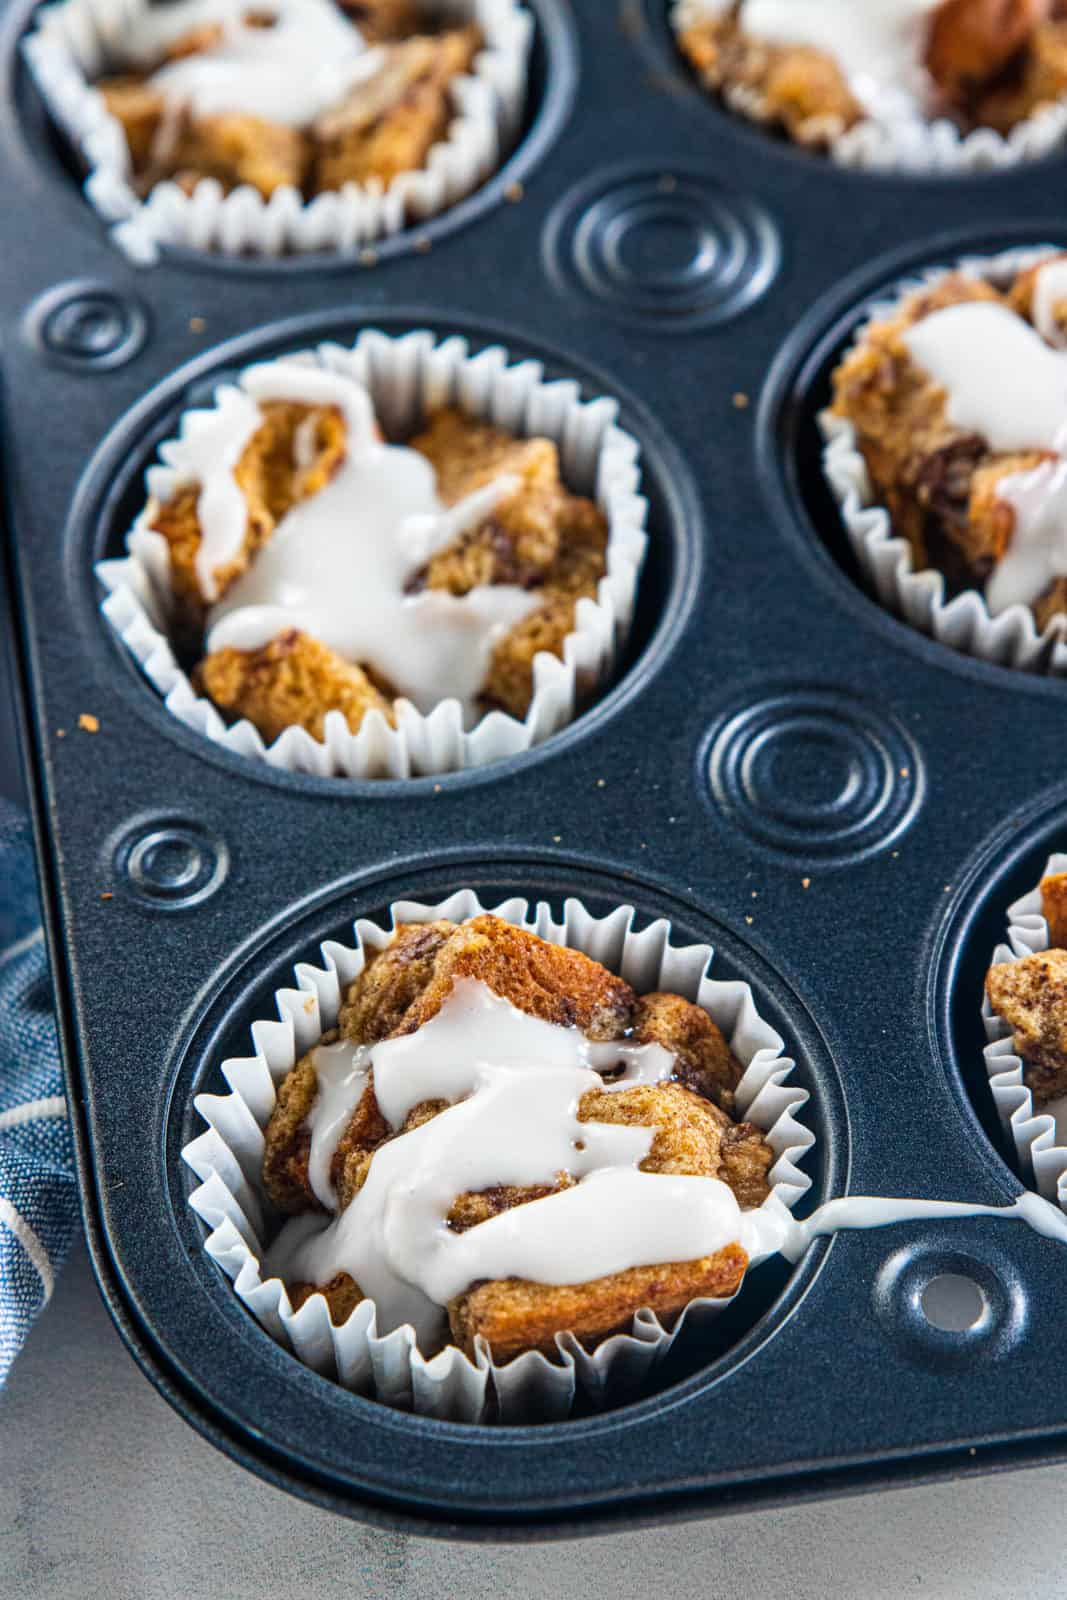 Baked French toast muffins in a muffin tin with glaze drizzled over the top.